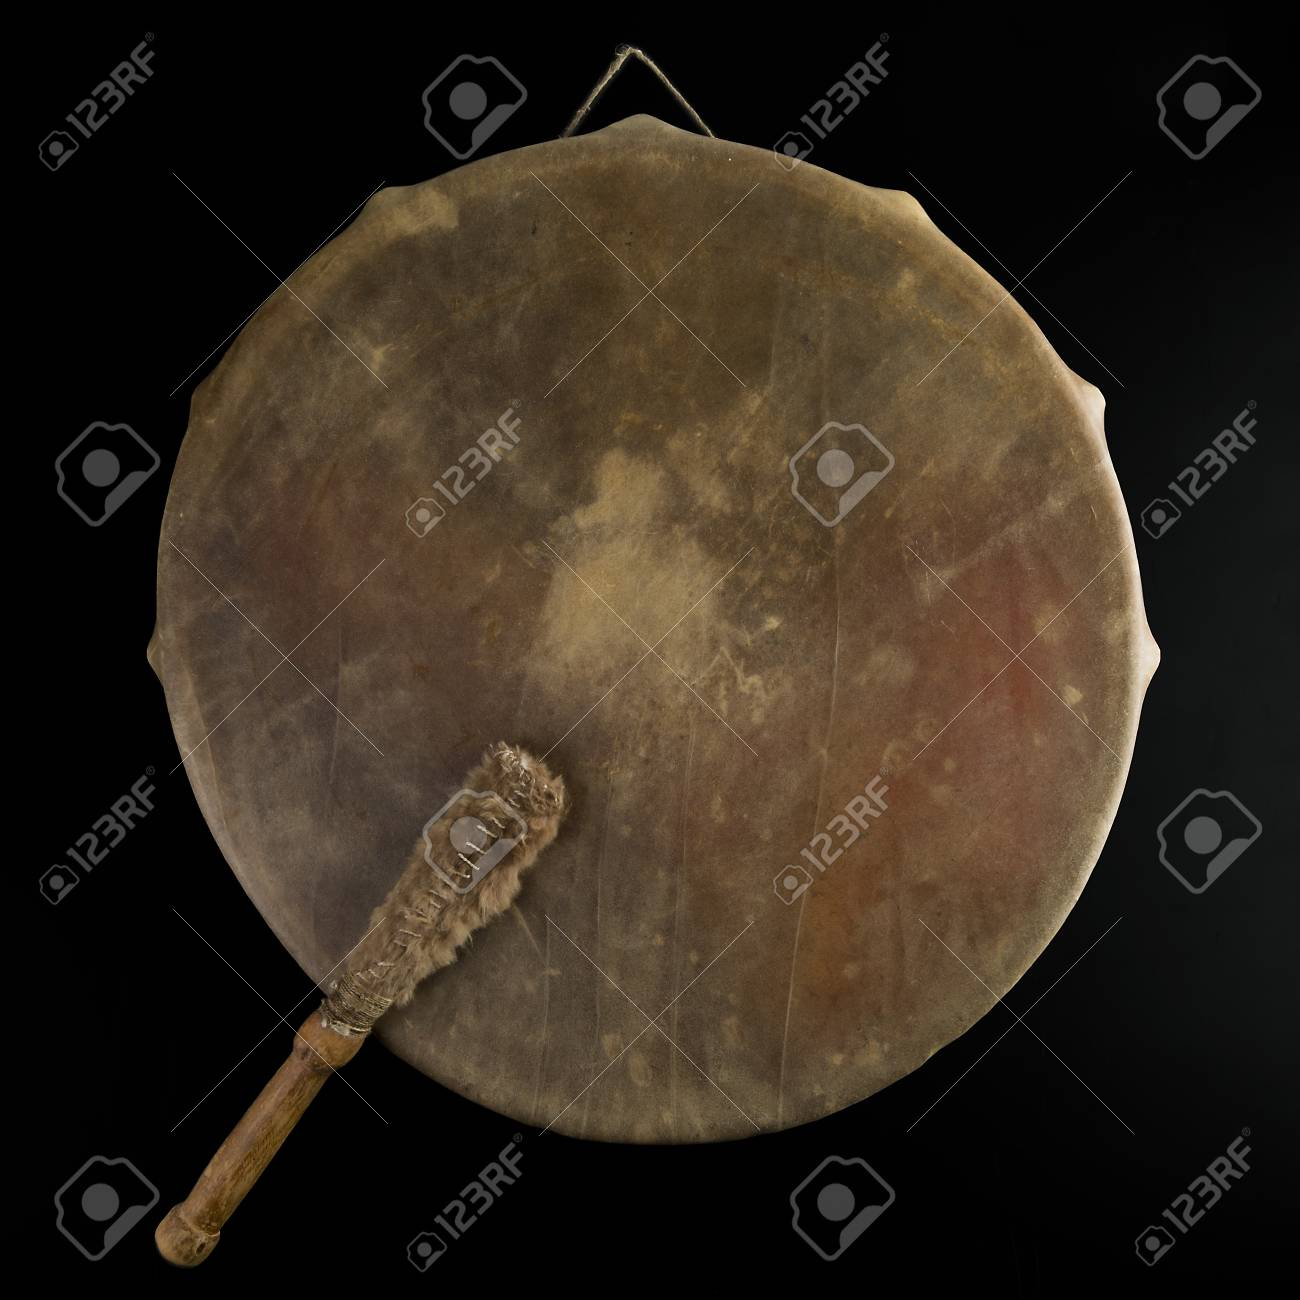 Ancient indian tambourine drum drumstick replica Stock Photo - 93865436